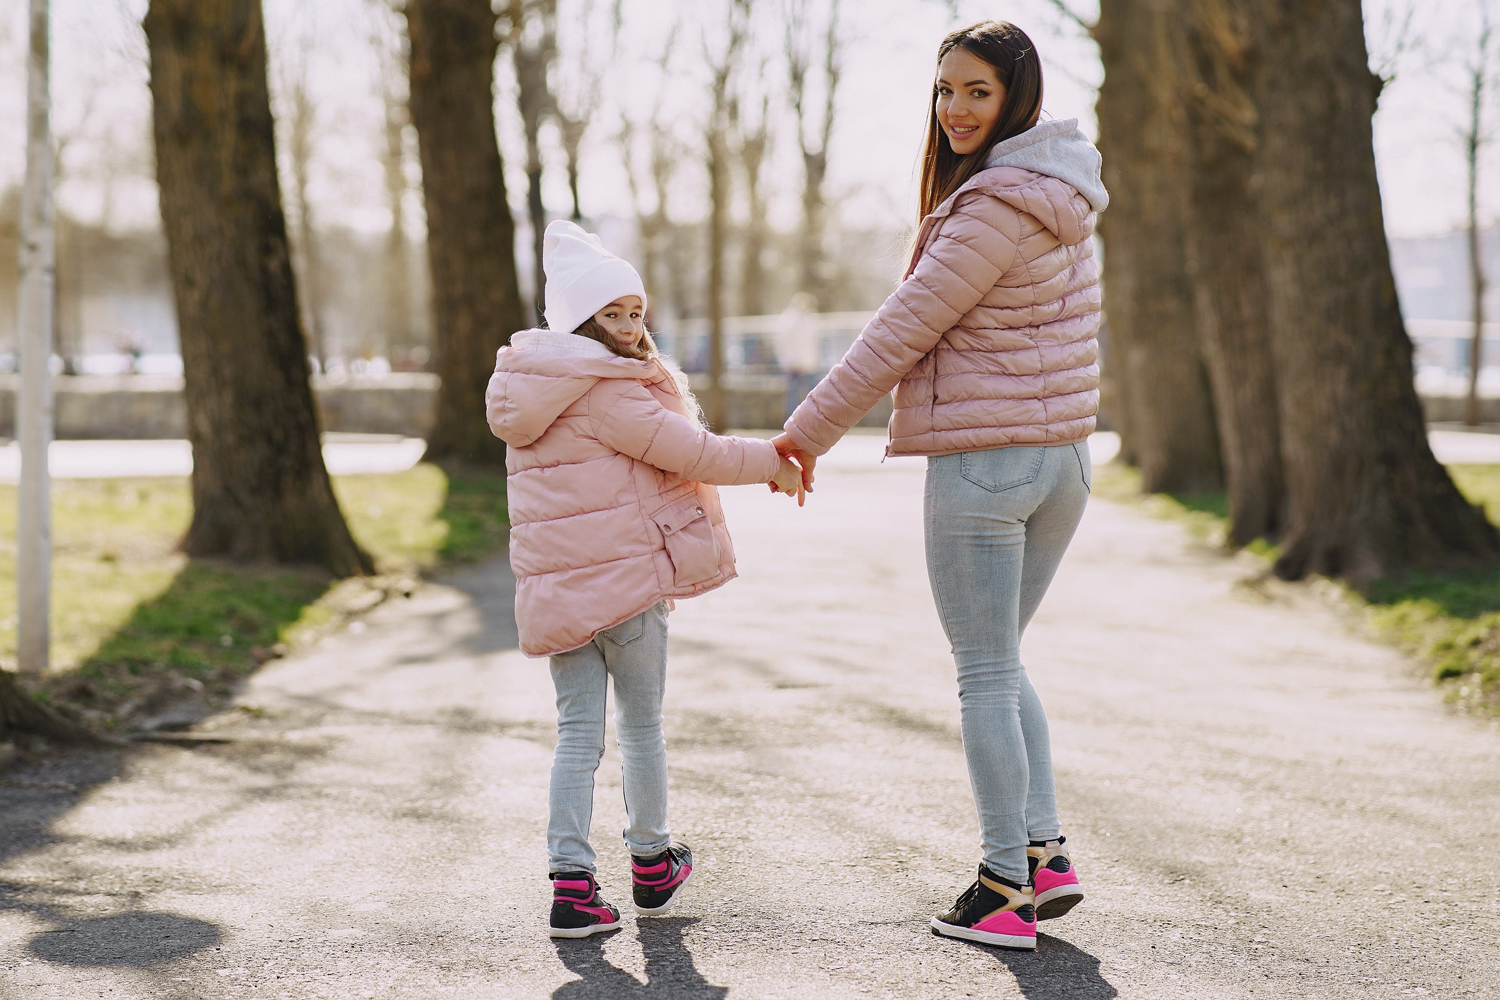 mother and daugther is similar ouftis hold each others hands and pose in the park